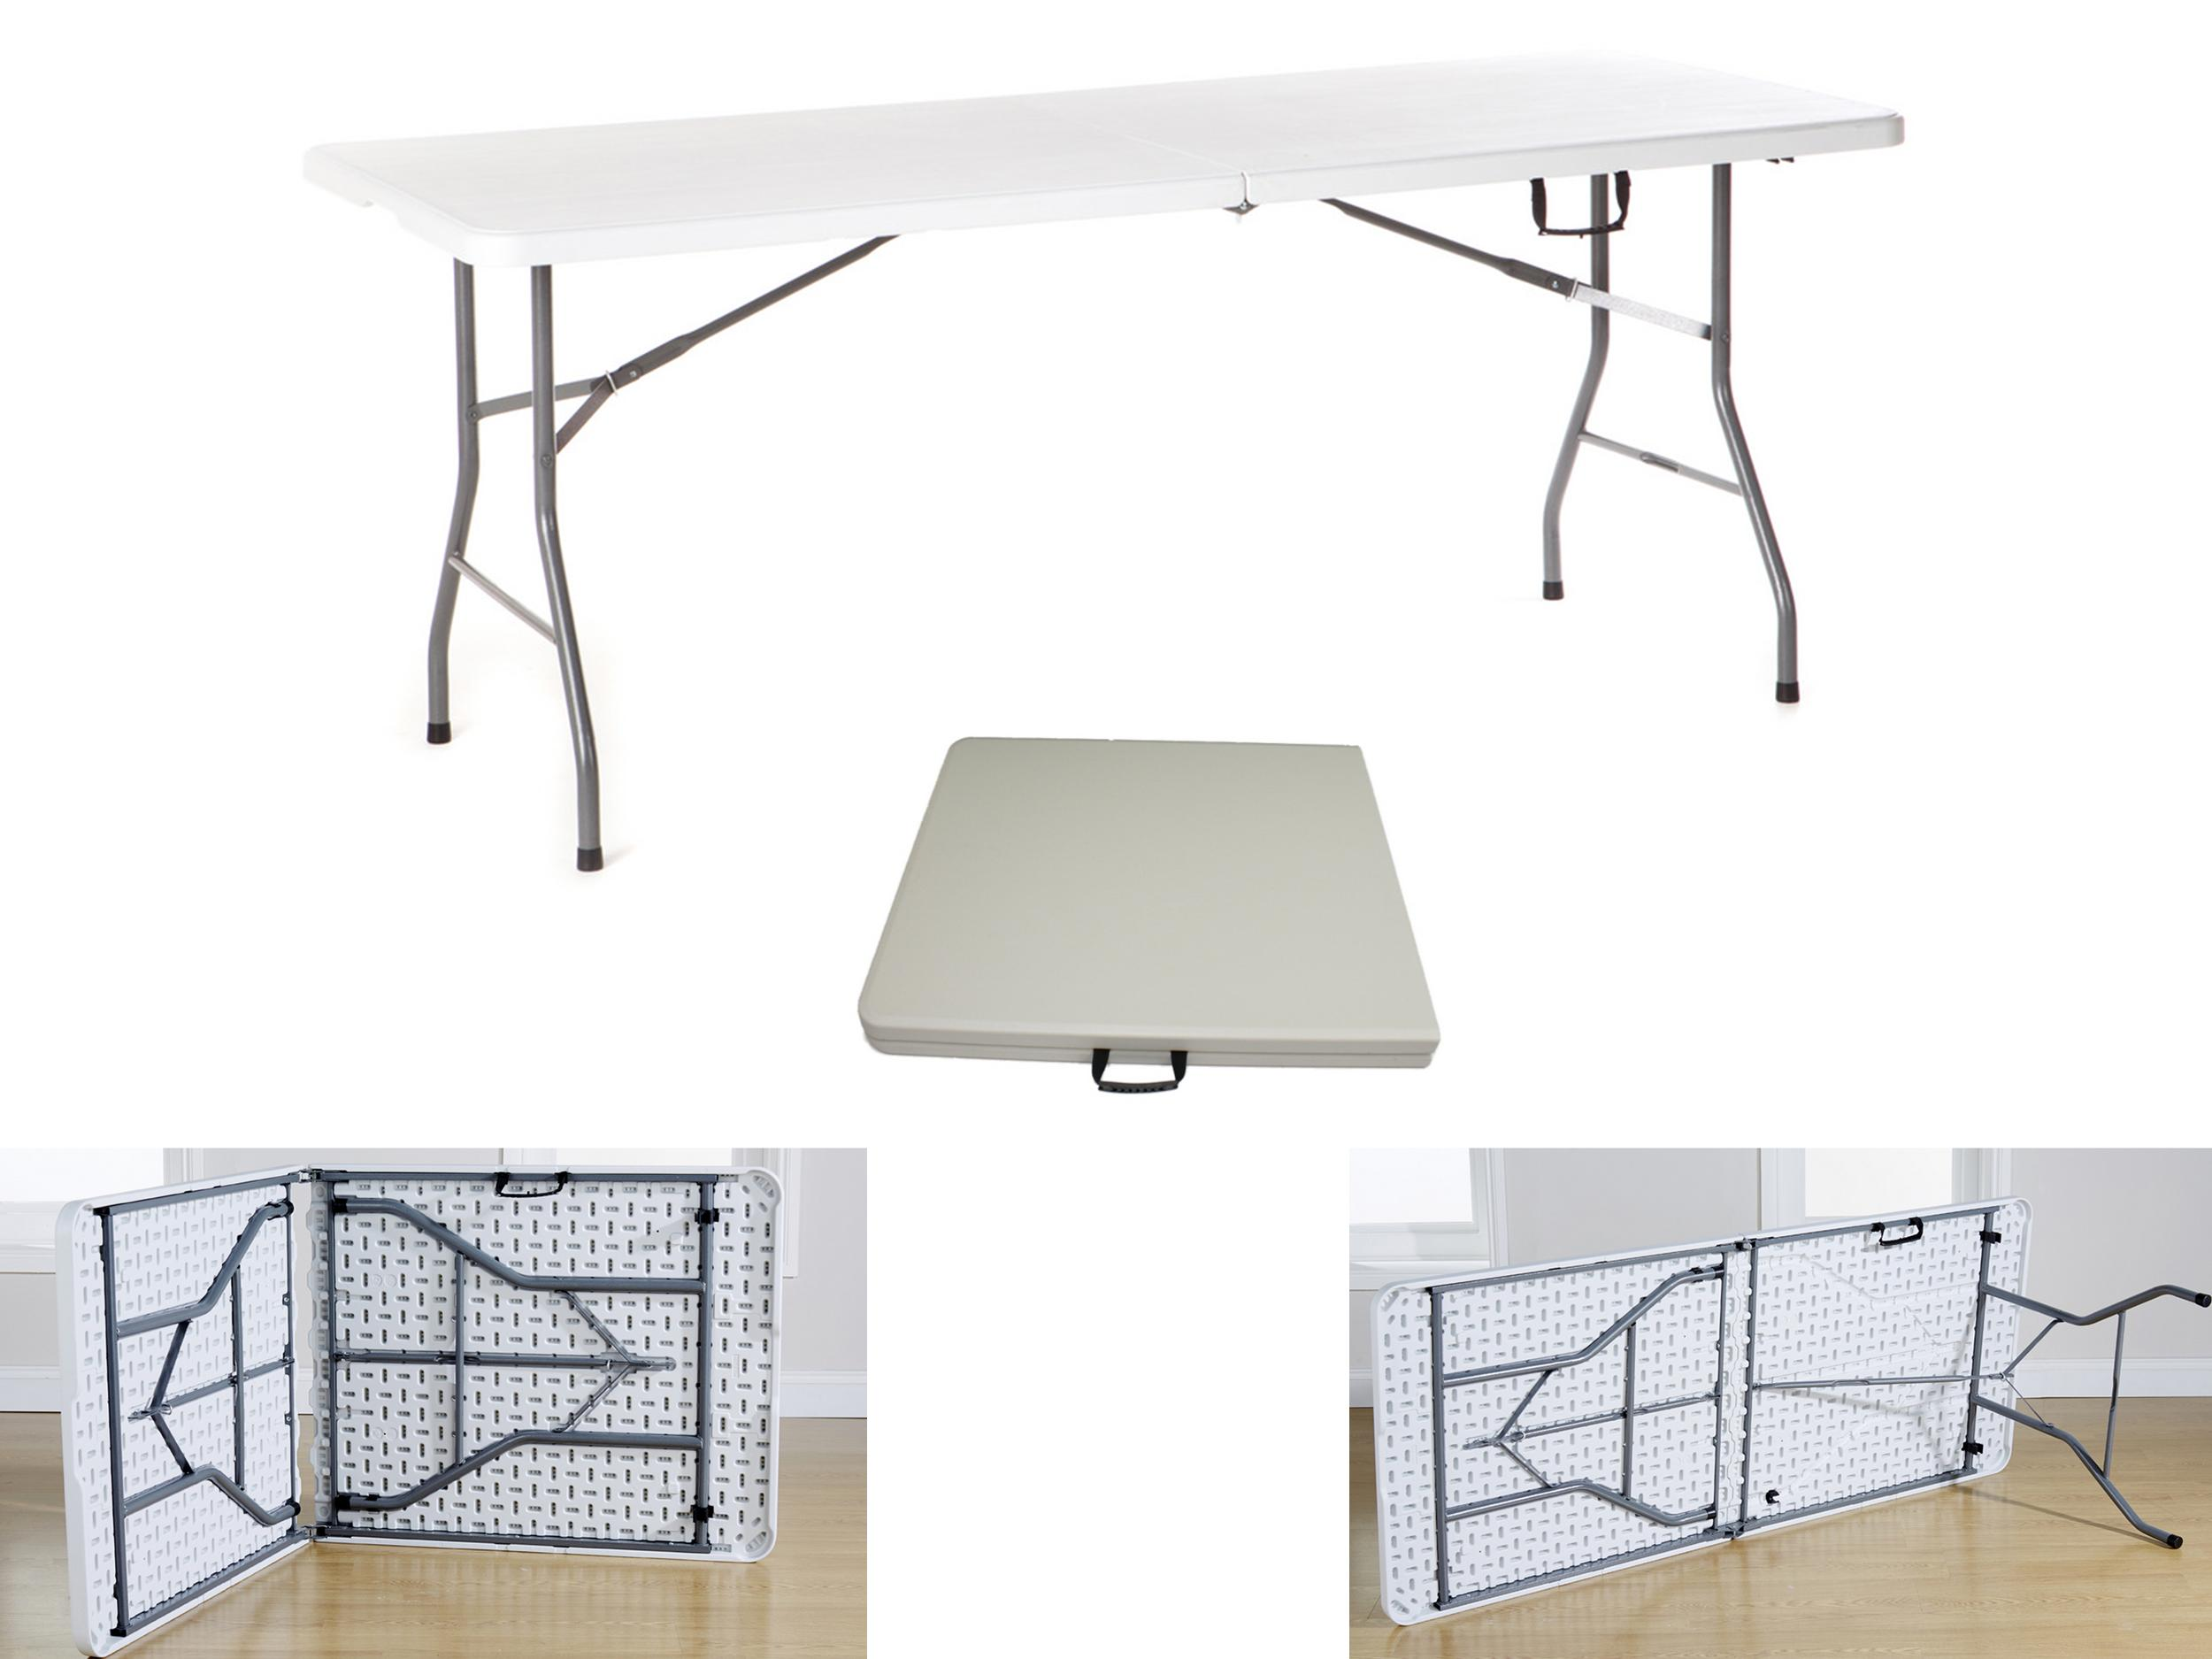 6ft folding table white plastic steel legs handle outdoor bbq